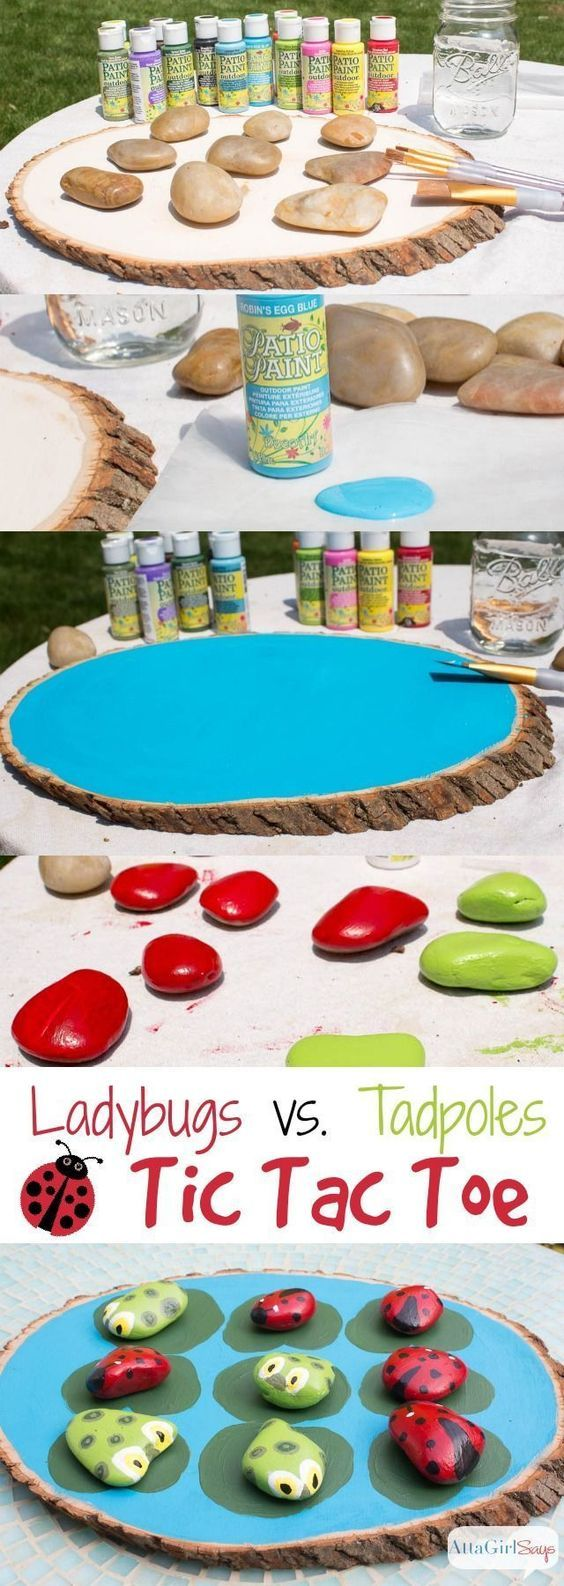 Pinned more than 135,000 times!!! Paint your own ladybugs vs. tadpoles tic tac toe game. Tutorial at AttaGirlSays.com